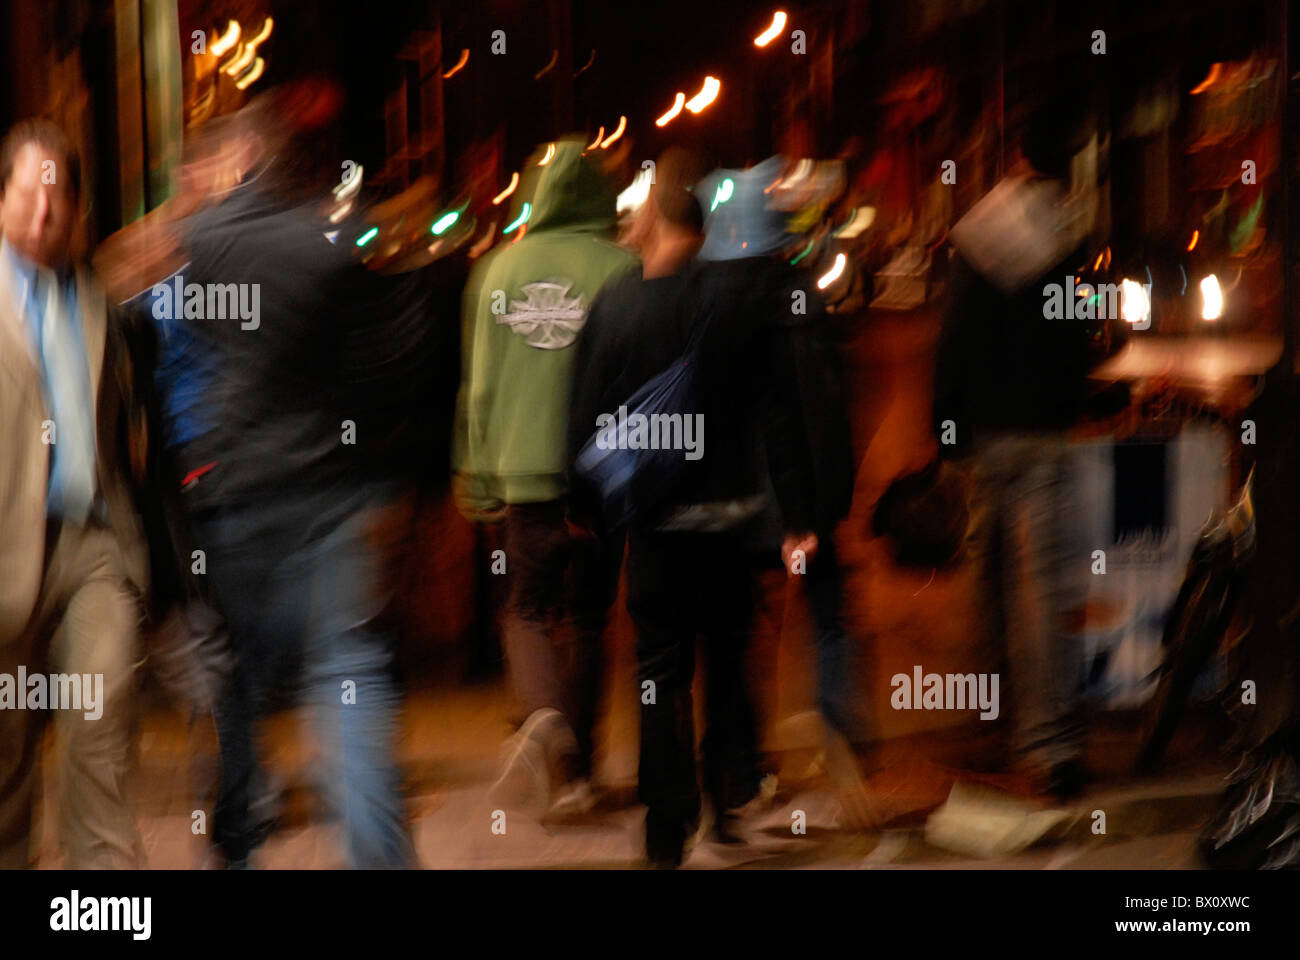 Urban gang of youth in city streets at night - Stock Image